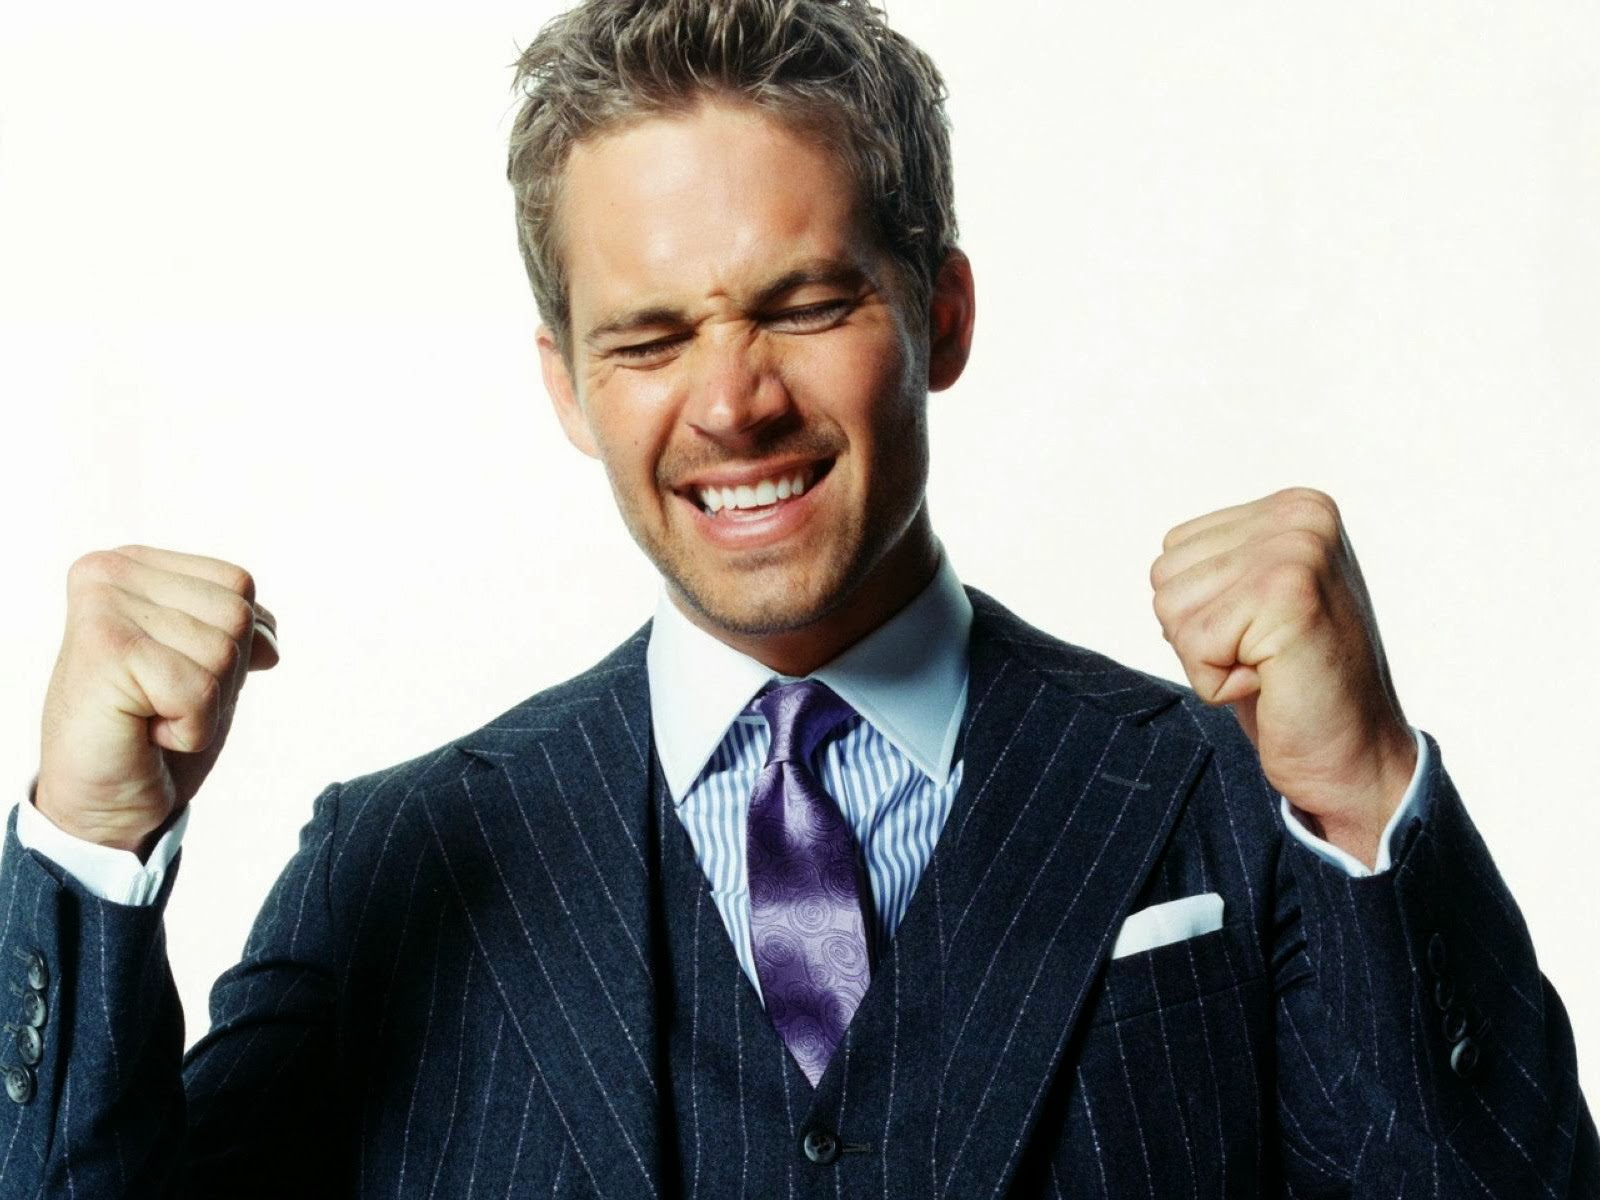 If You Had Told Me Five Years Ago That I Would Be Genuinely Upset By The Passing Of Paul Walker Not Have Believed